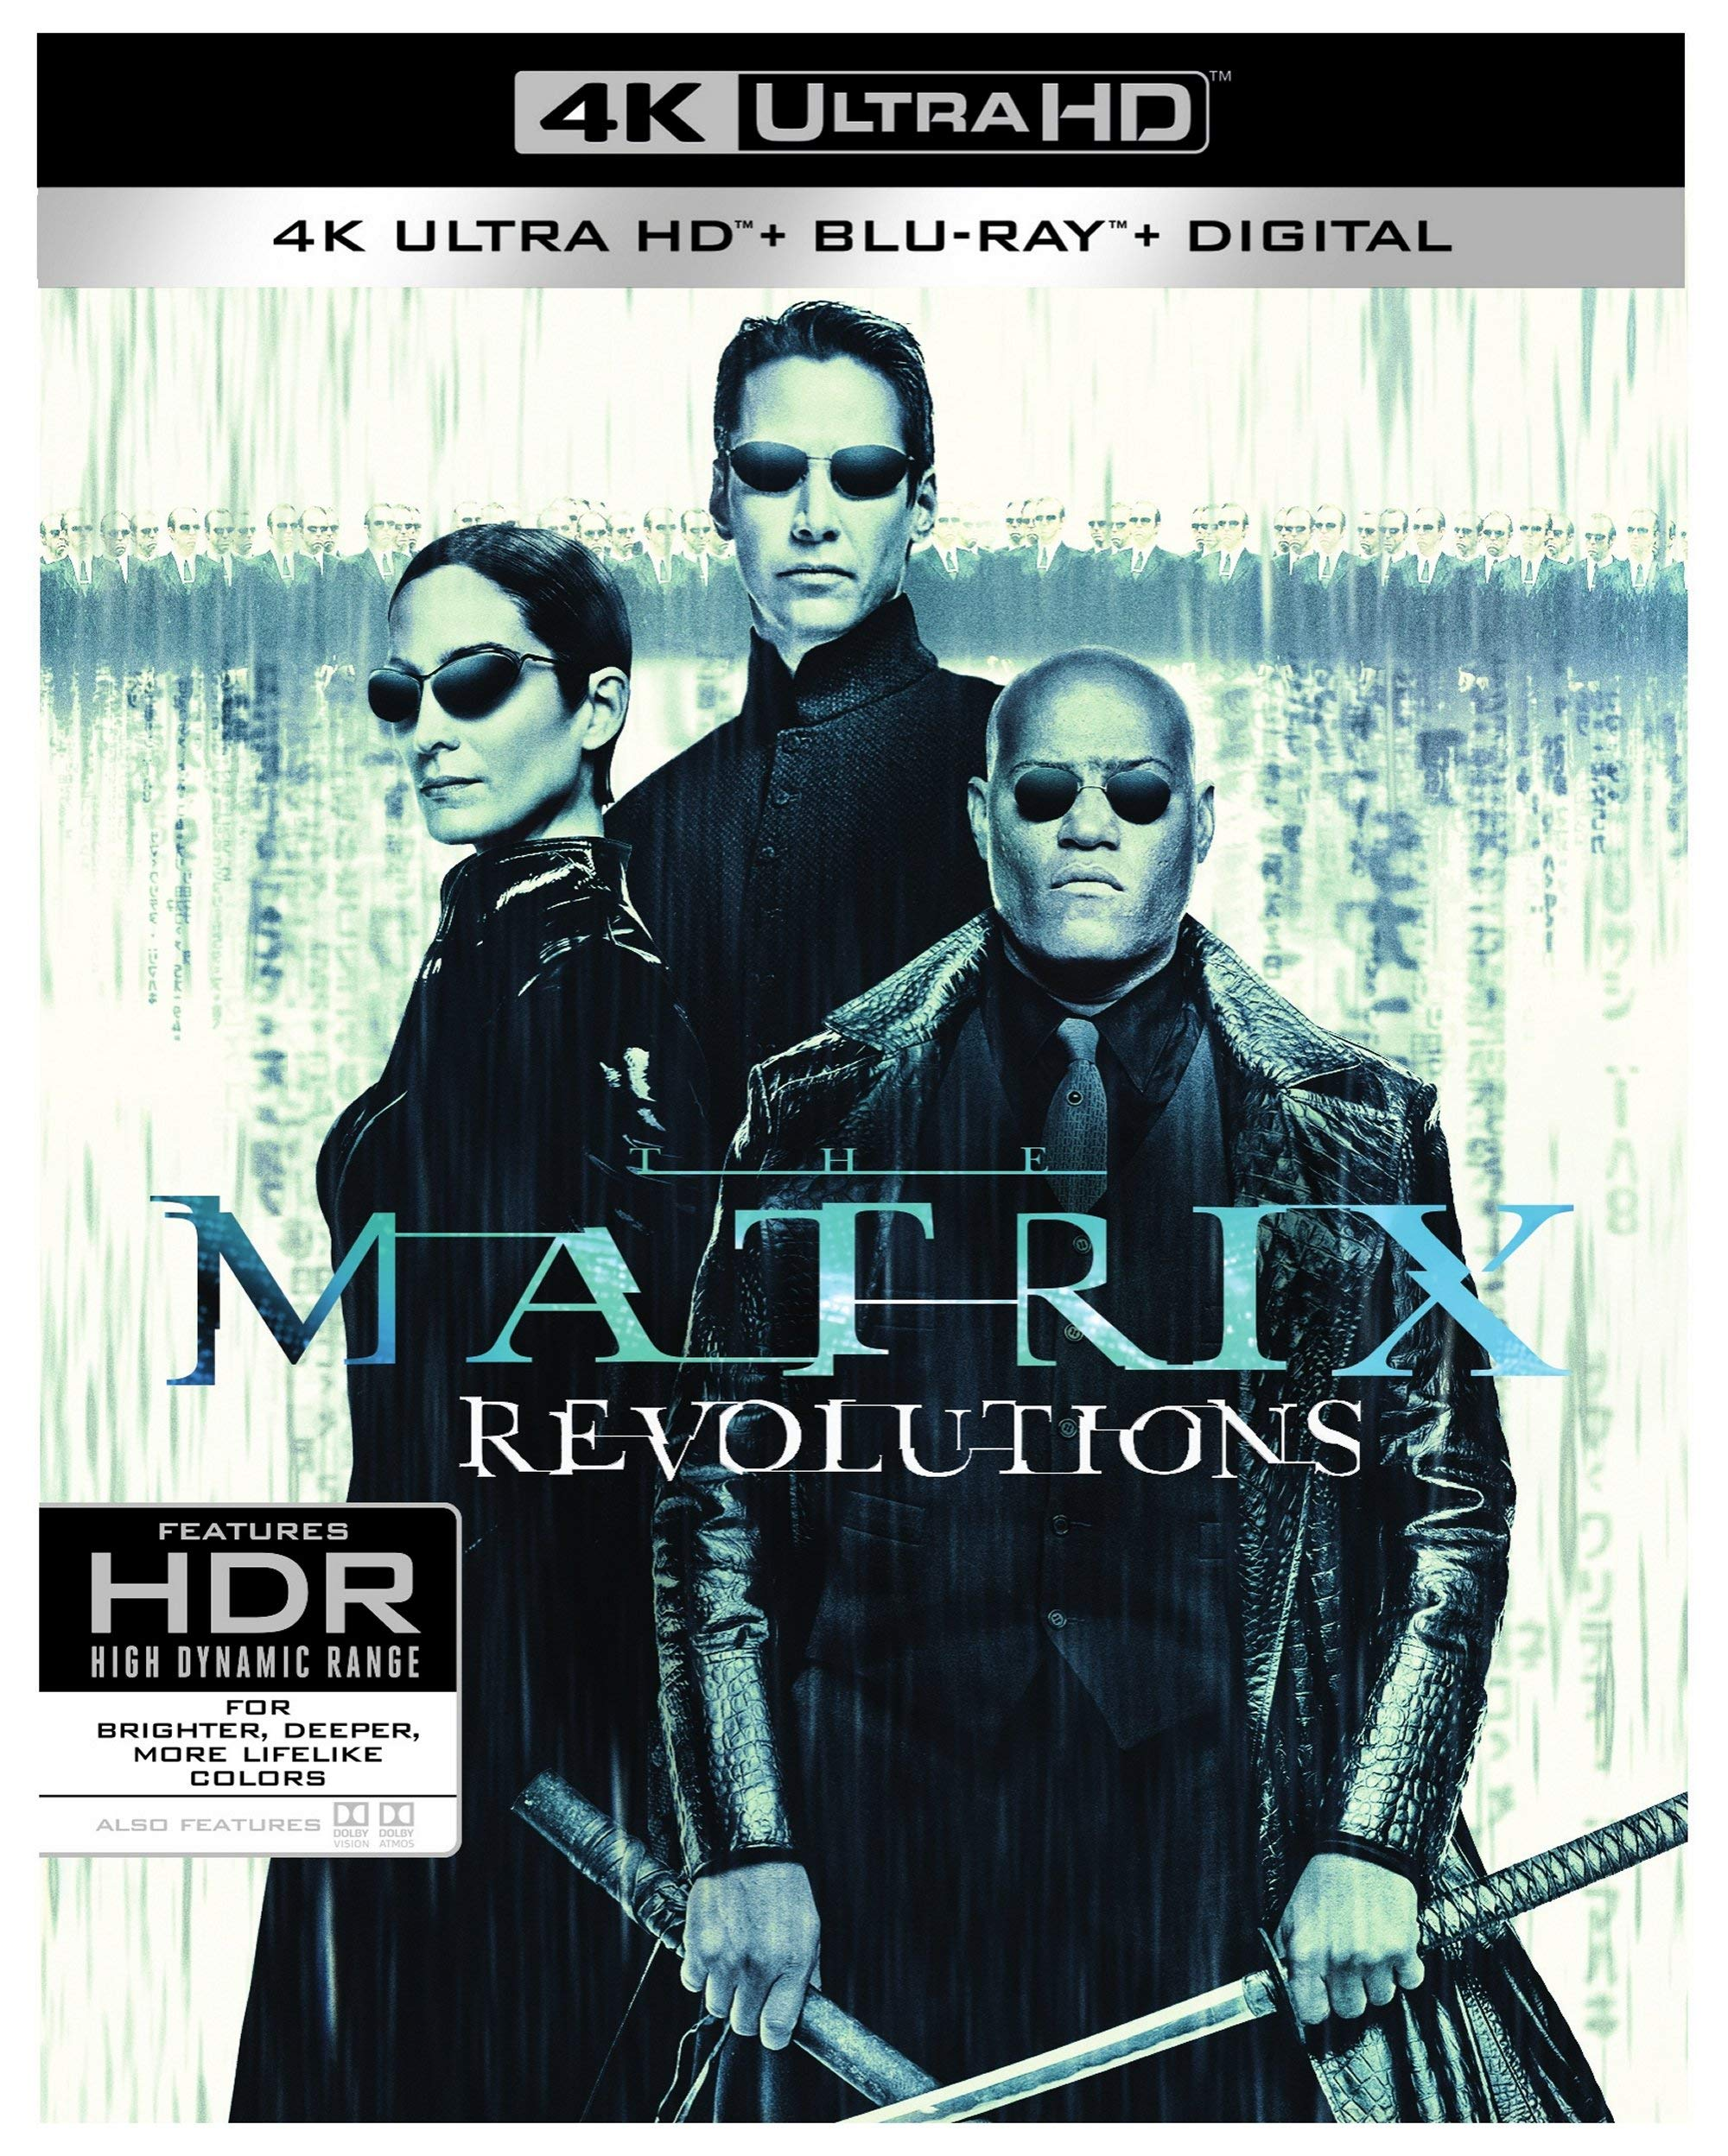 4K Blu-ray : The Matrix Revolutions (Black, With Blu-ray, 4K Mastering, Ultraviolet Digital Copy, 3 Pack)